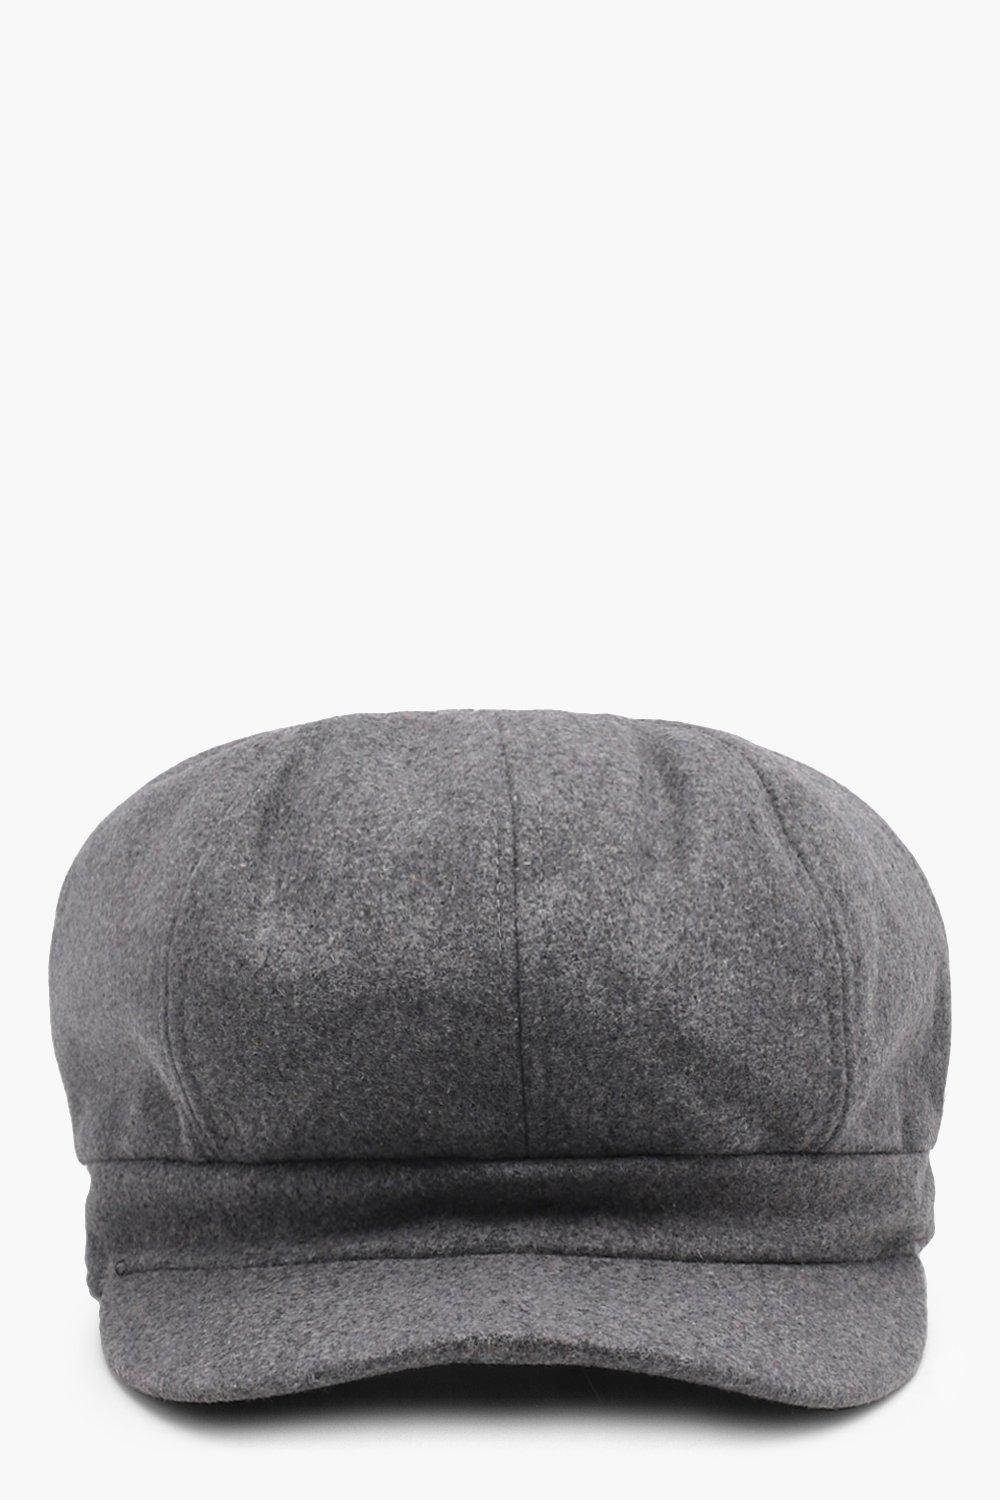 173bbc51989 Lyst - Boohoo Olivia Brushed Bakerboy Hat in Gray